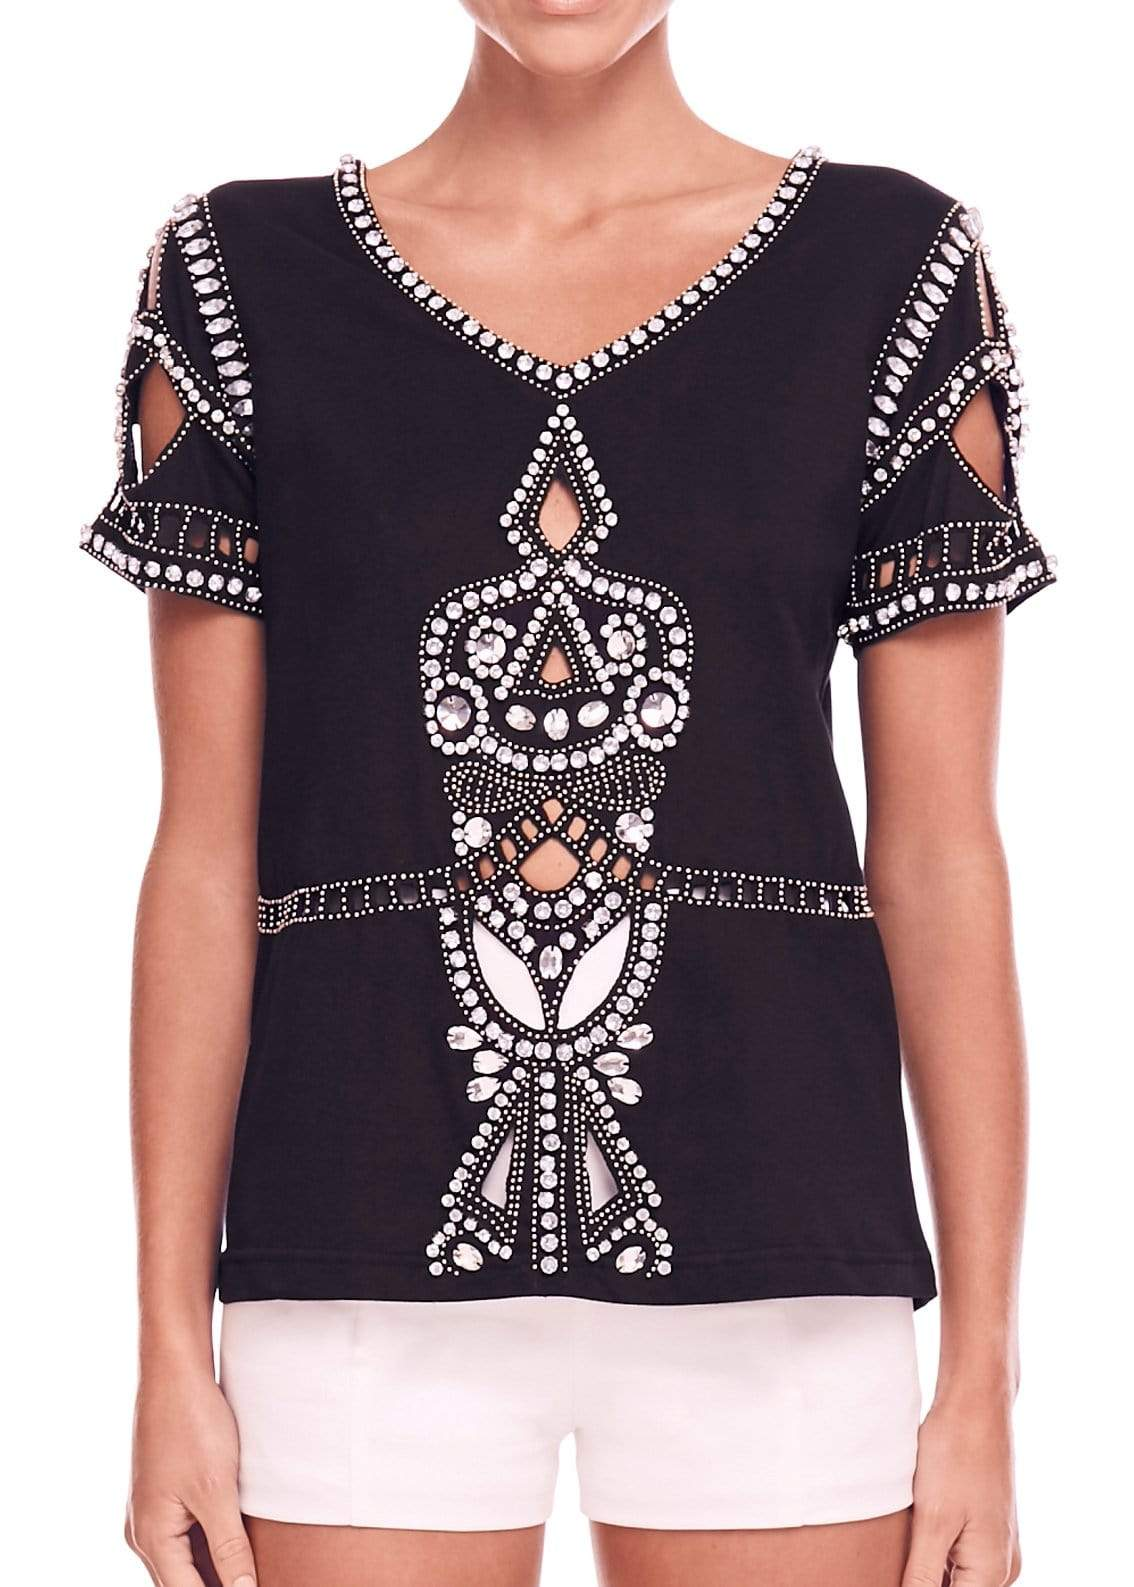 AVENTOR BEADED TEE - ELIYA THE LABEL